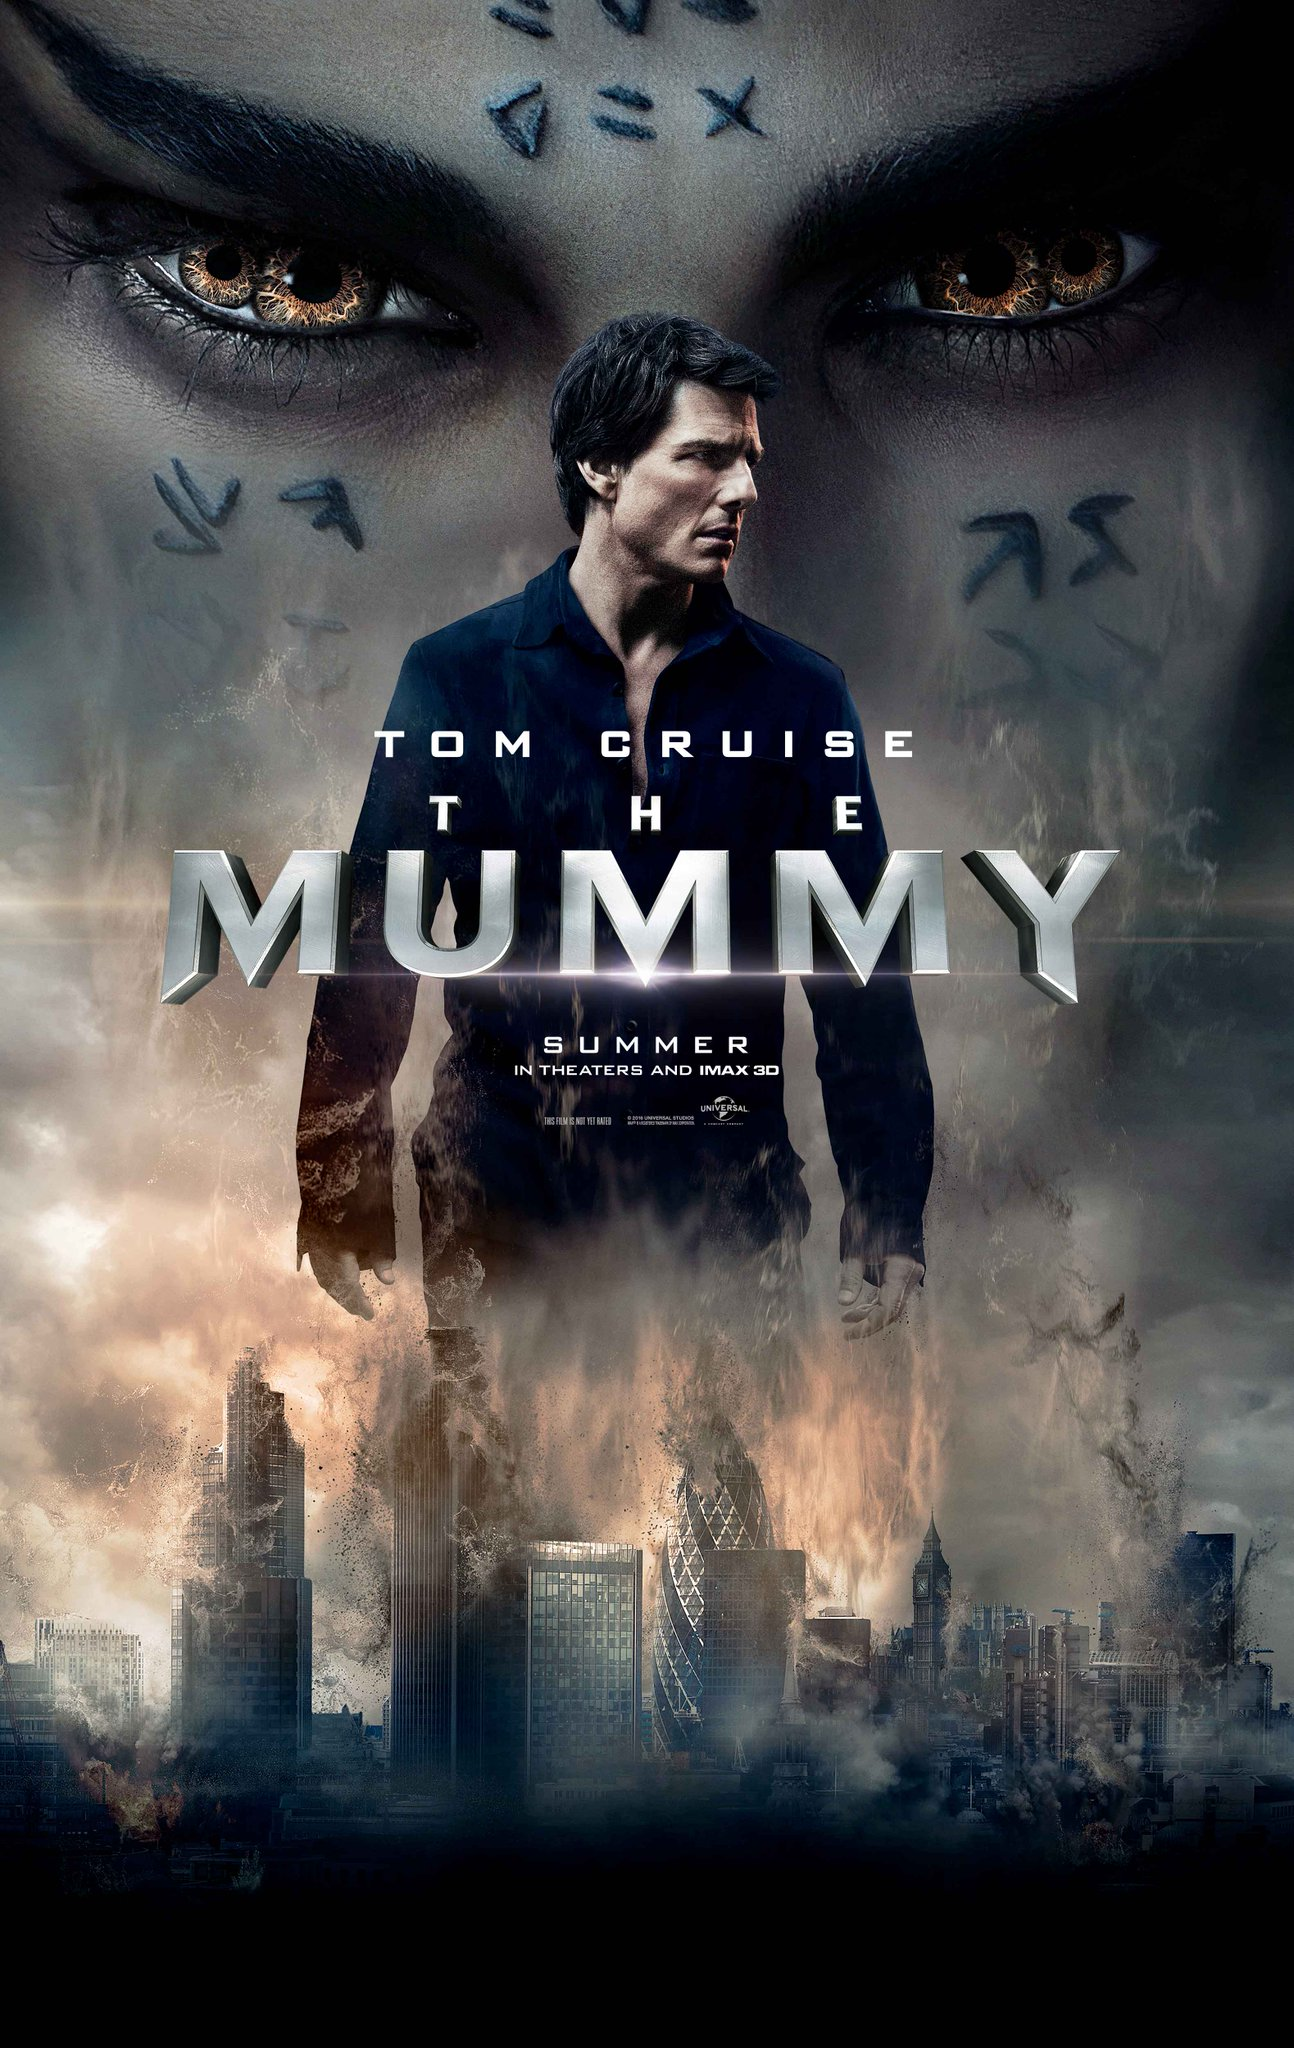 The Mummy: Tom Cruise Confronts Pure Evil In New Images As Alex Kurtzman Discusses His Creative Approach